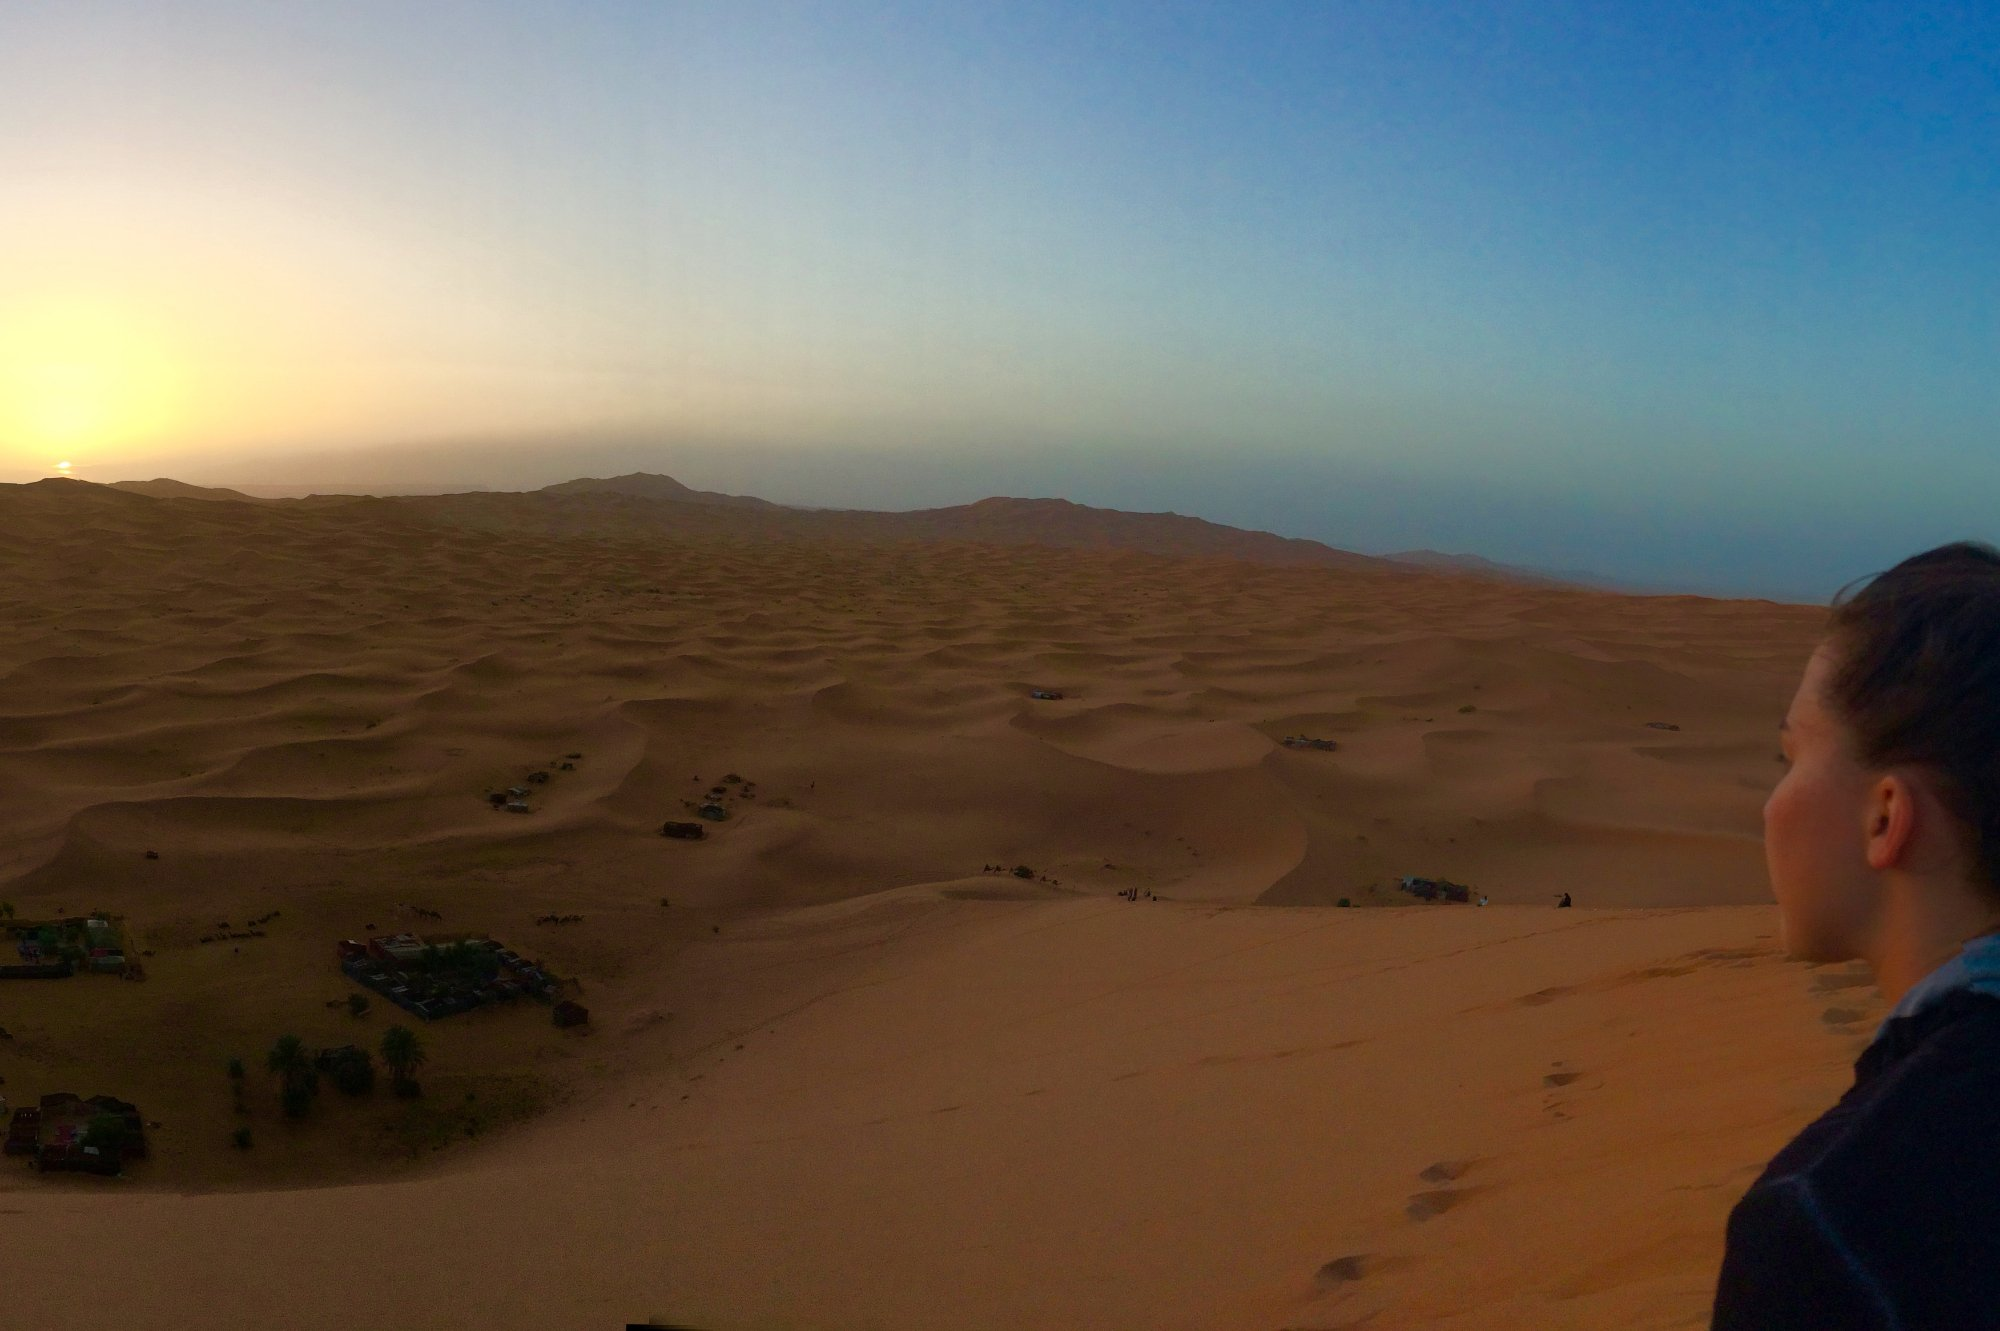 sunrise-over-the-desert